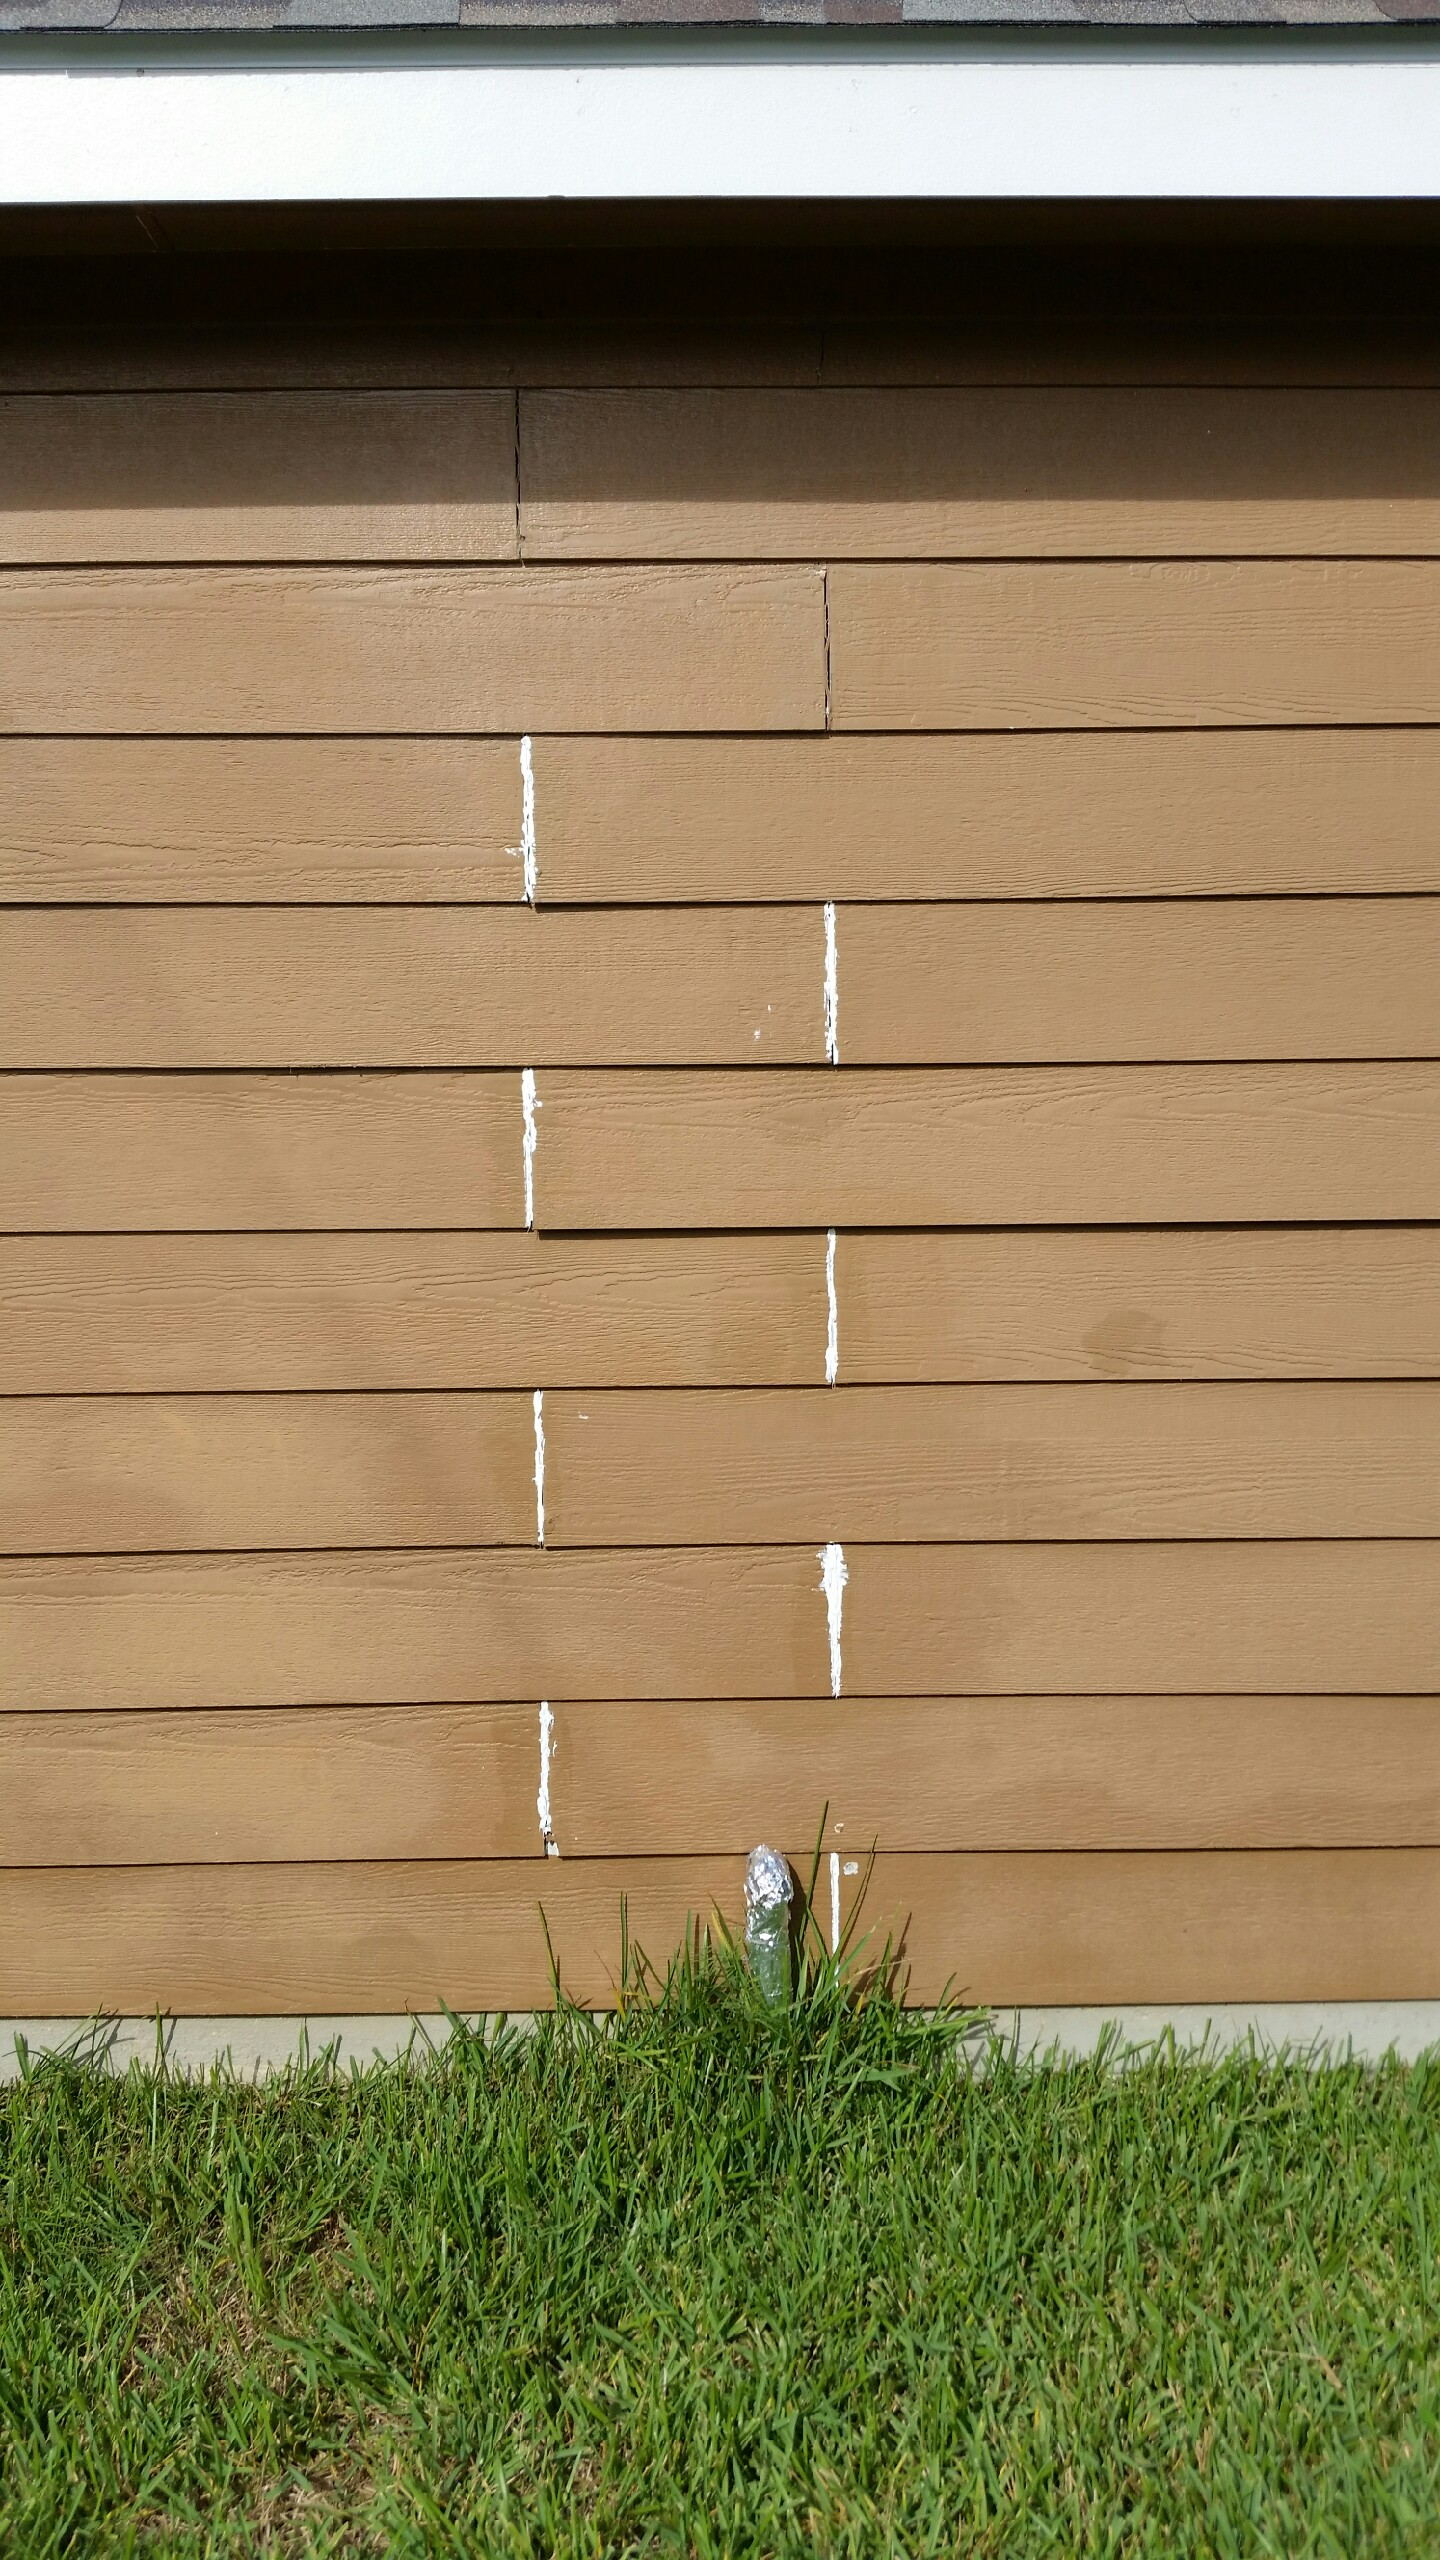 Homeowner Chose Lp Smartside Siding For Proven Performance